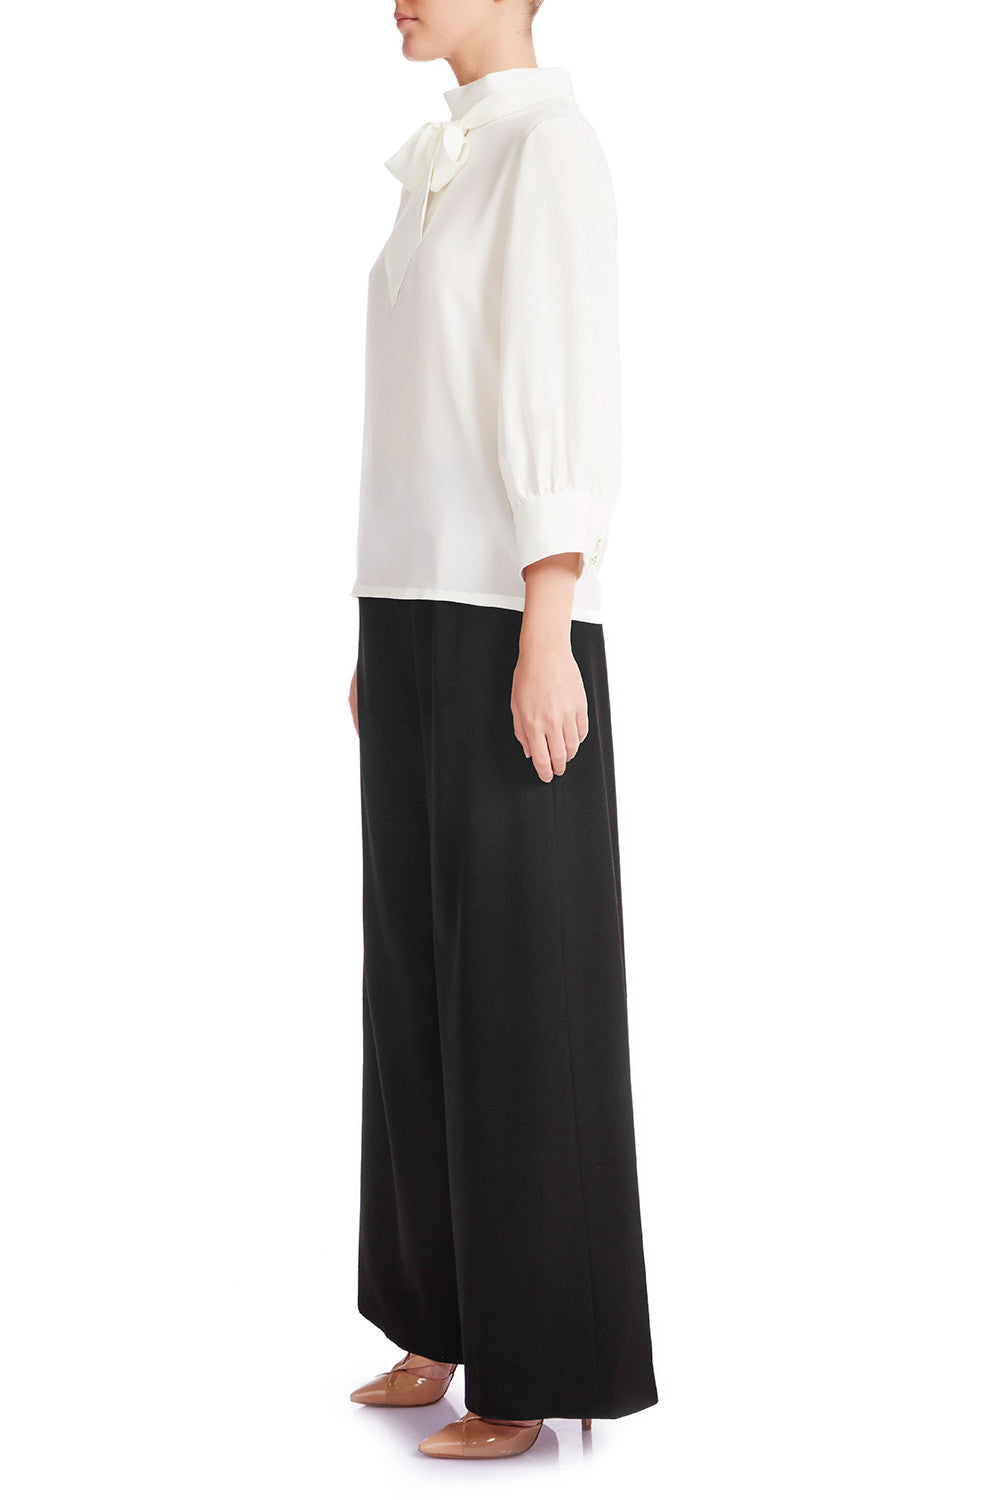 ANNA Wide Leg Trouser - HAUS OF SONG